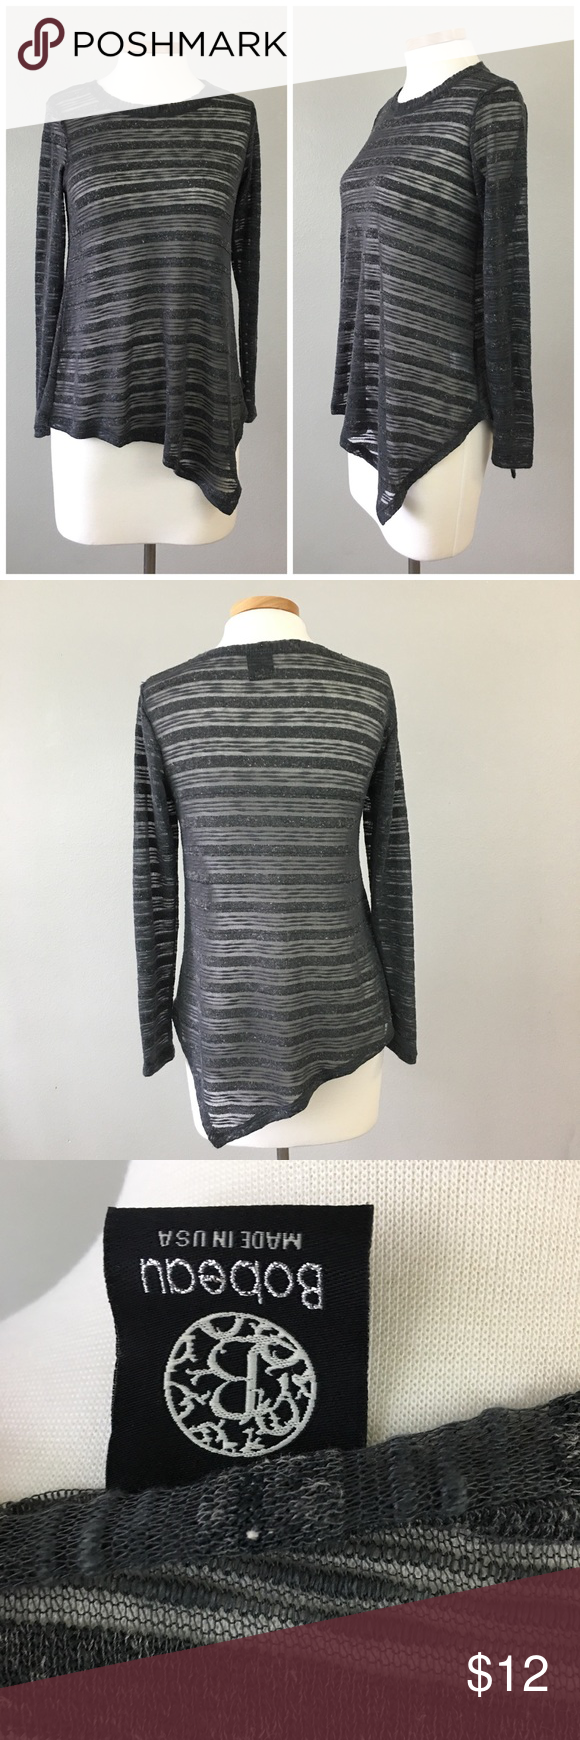 Bobeau Burnout Asymmetrical Pullover Sweater Top Bobeau Burnout Asymmetrical Pullover Sweater Top. Size XS with slight oversized fit. Thank you for looking at my listing. Please feel free to comment with any questions (no trades/modeling).  •Fabric: Polyester Blend  •Condition: very good, no holes or stains.   ✨Bundle and save!✨10% off 2 items, 20% off 3 items & 30% off 5+ items! KA bobeau Sweaters Crew & Scoop Necks